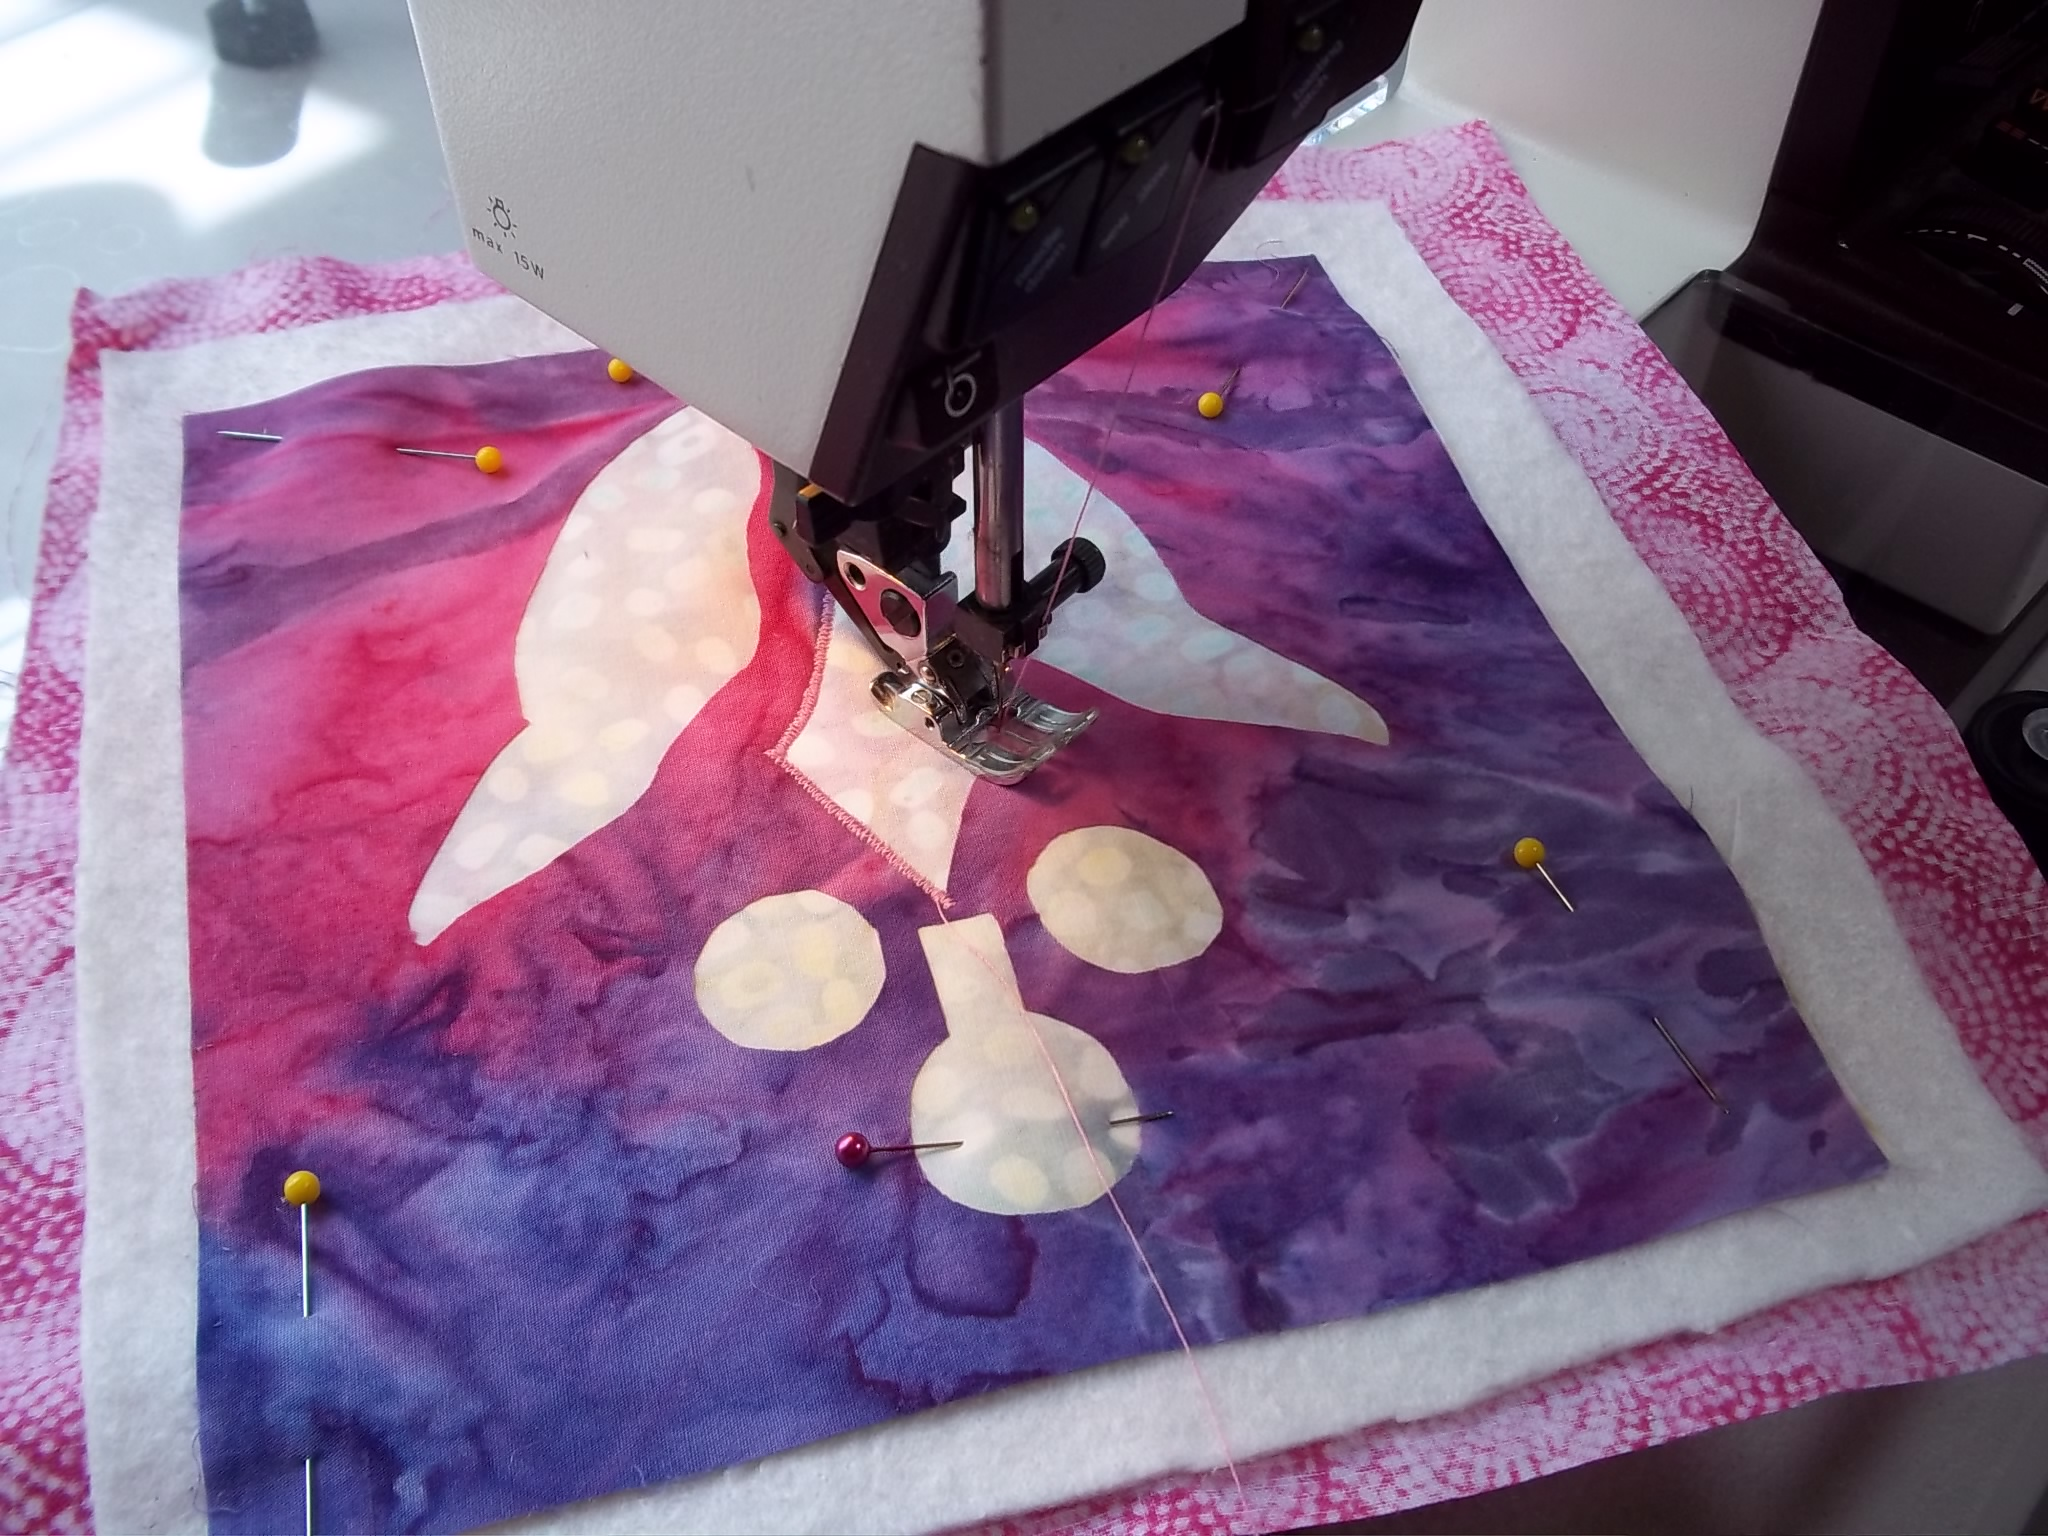 Stitch with Appli-quilting.